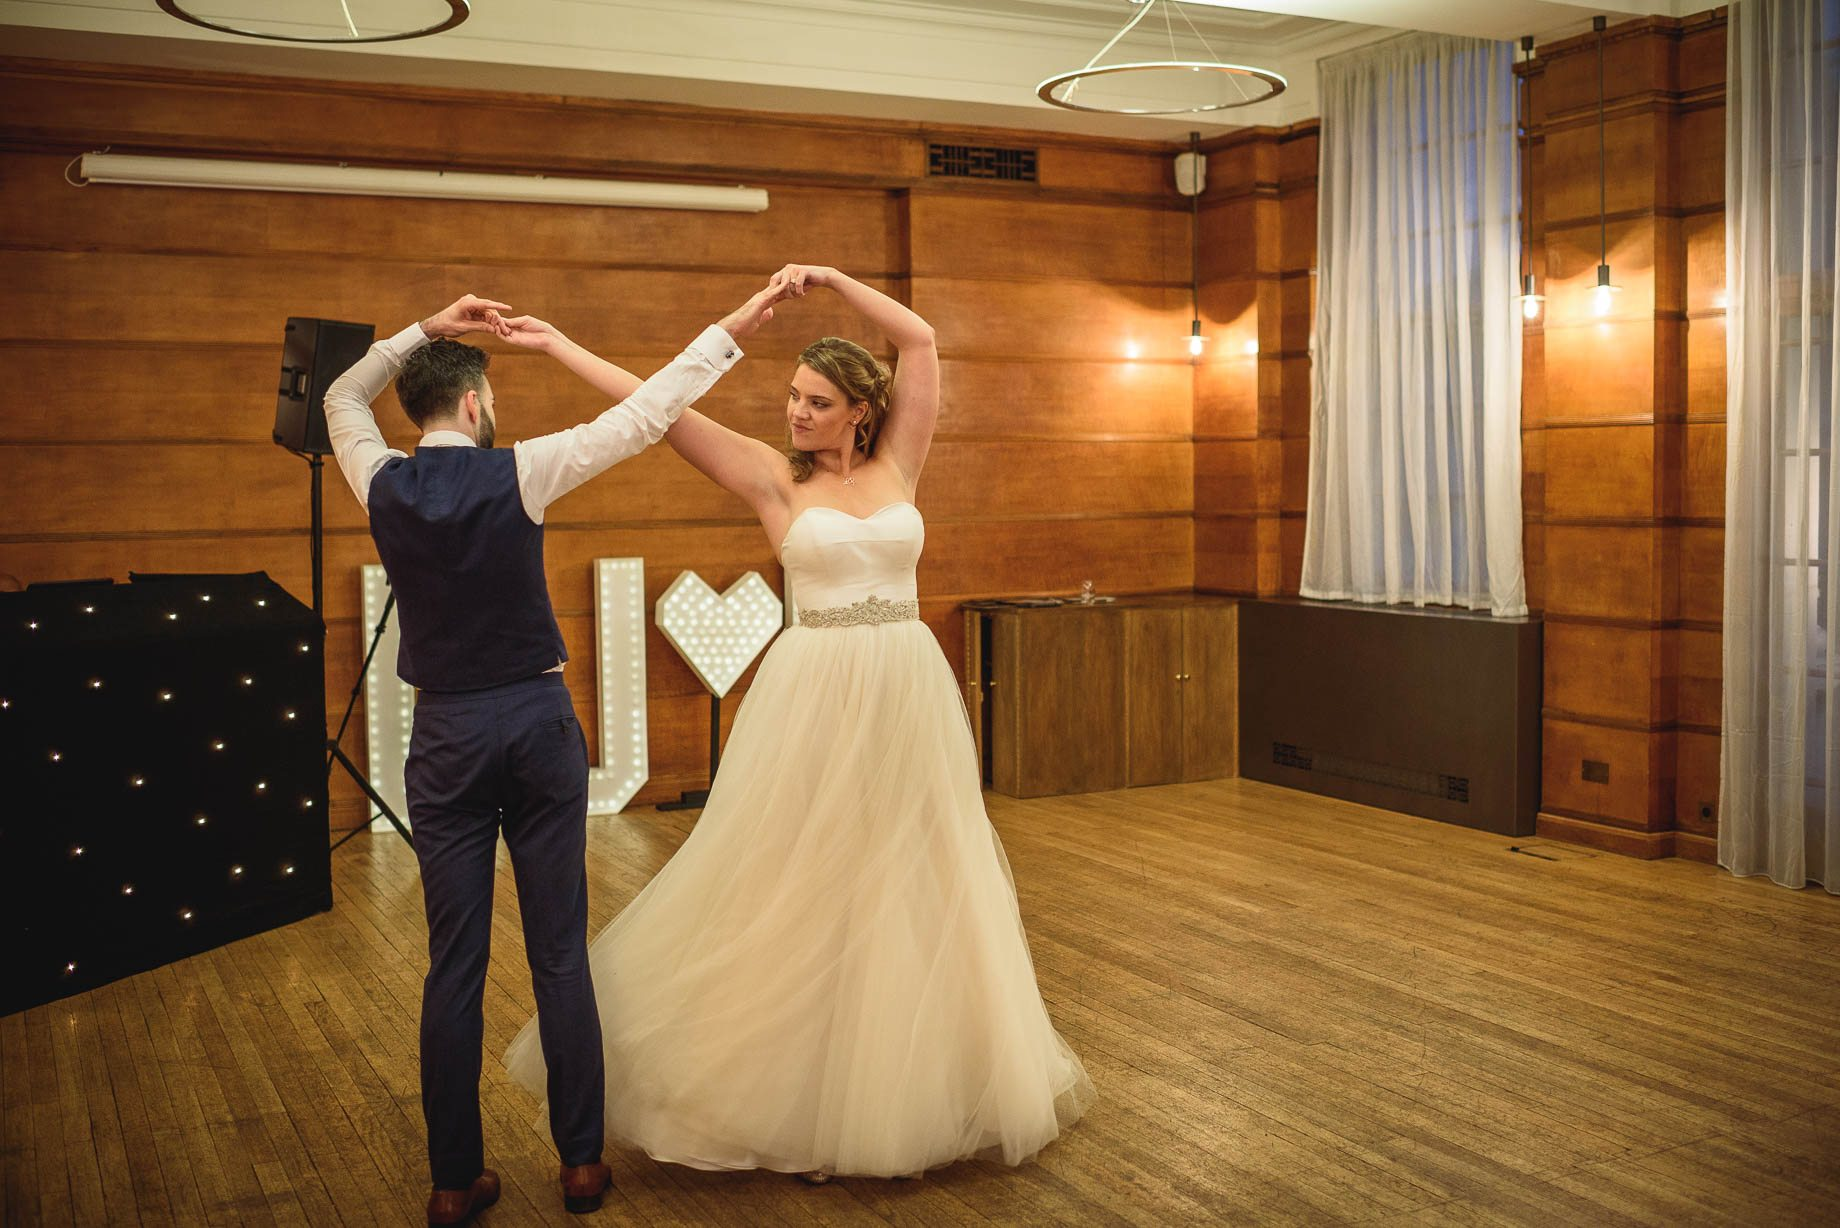 London Wedding Photography - Guy Collier Photography - LJ + Russell (151 of 155)